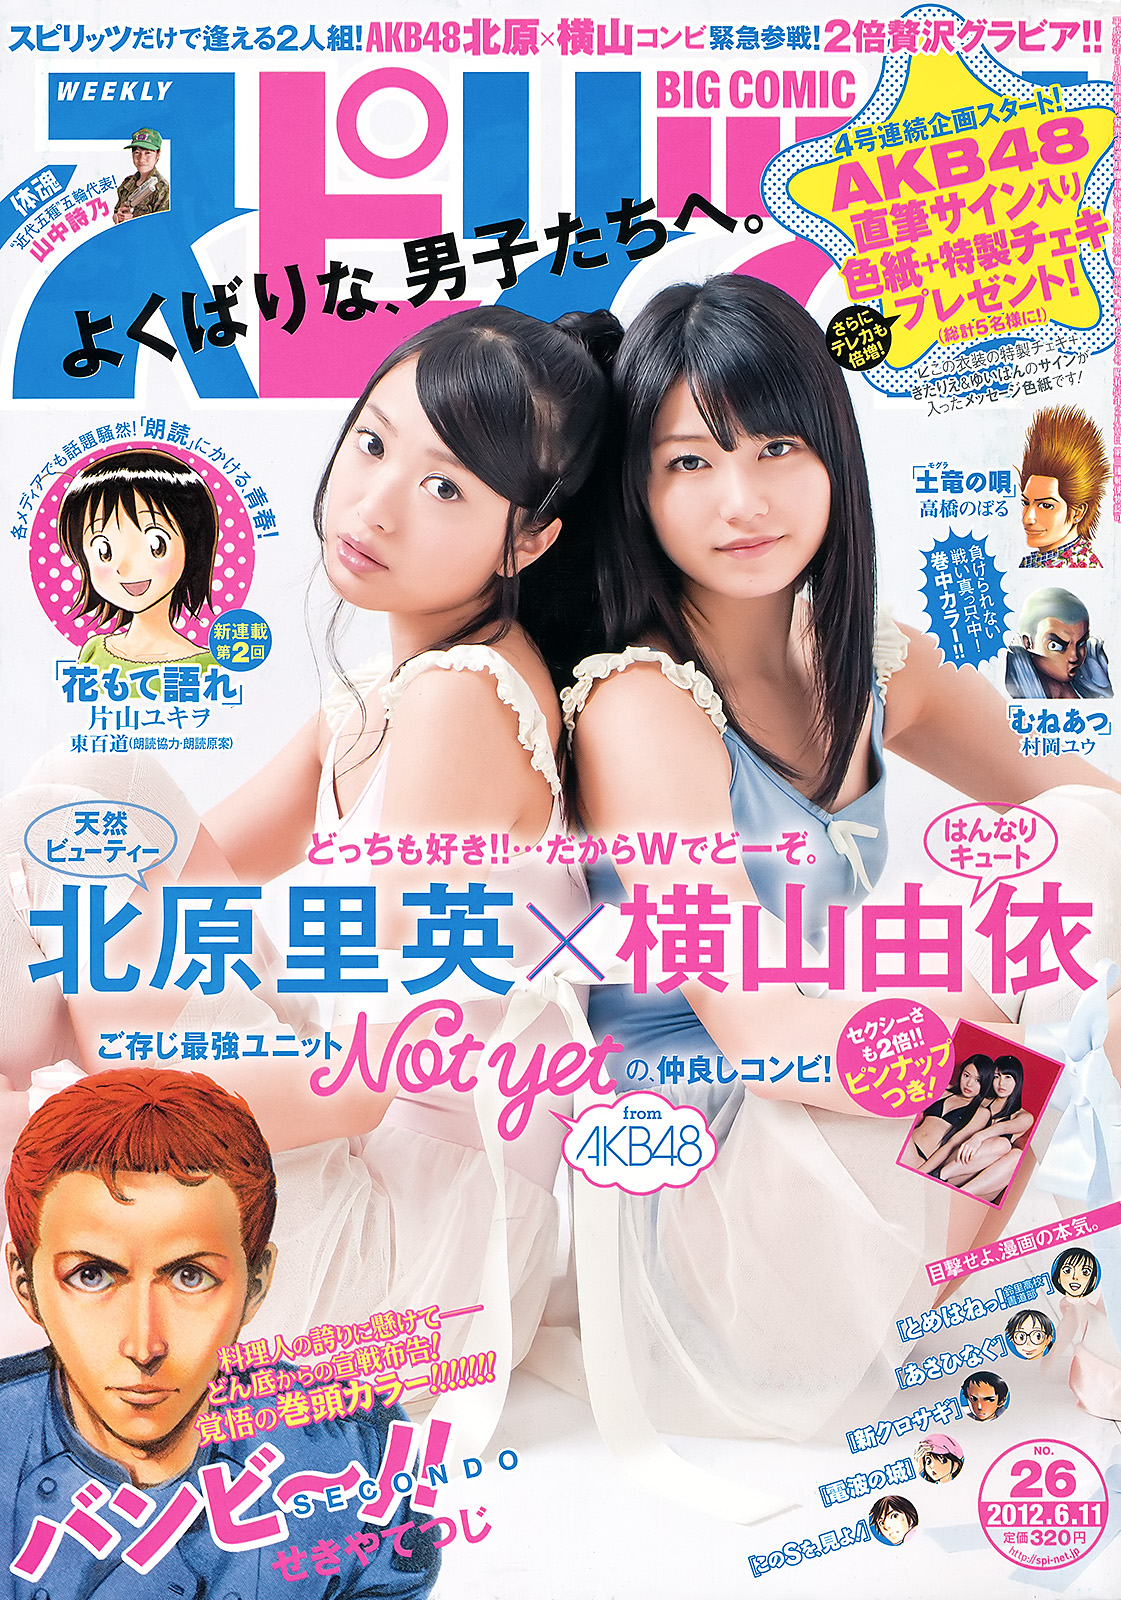 01-jpg [Big Comic Spirits] 2012 No.26 Rie Kitahara 北原里英 x Yui Yokoyama 横山由依 [7P5MB]